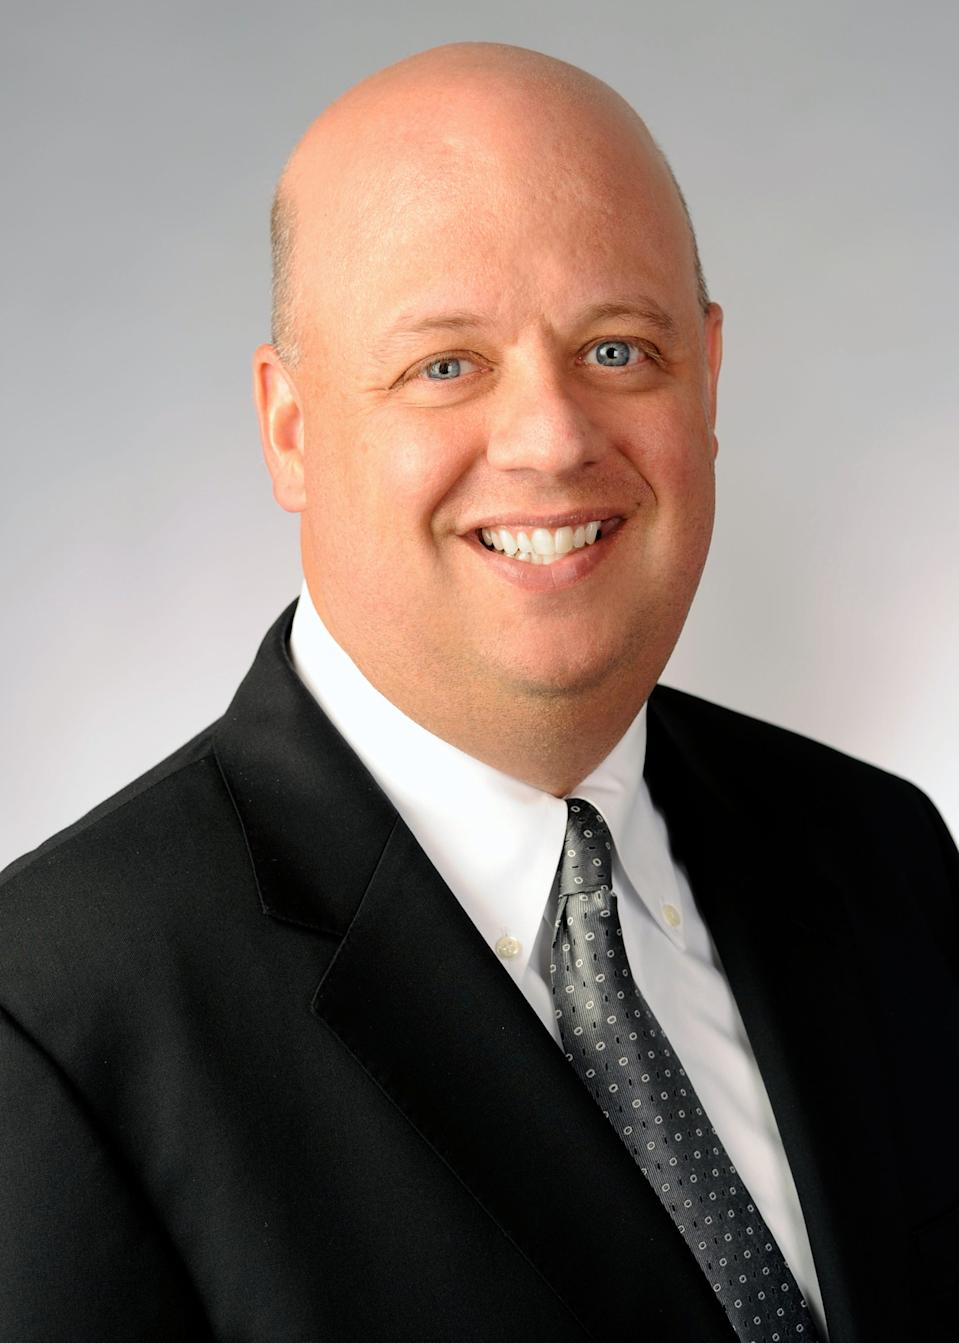 GM's newly hired CFO Paul Jacobson joins the automaker from Delta.